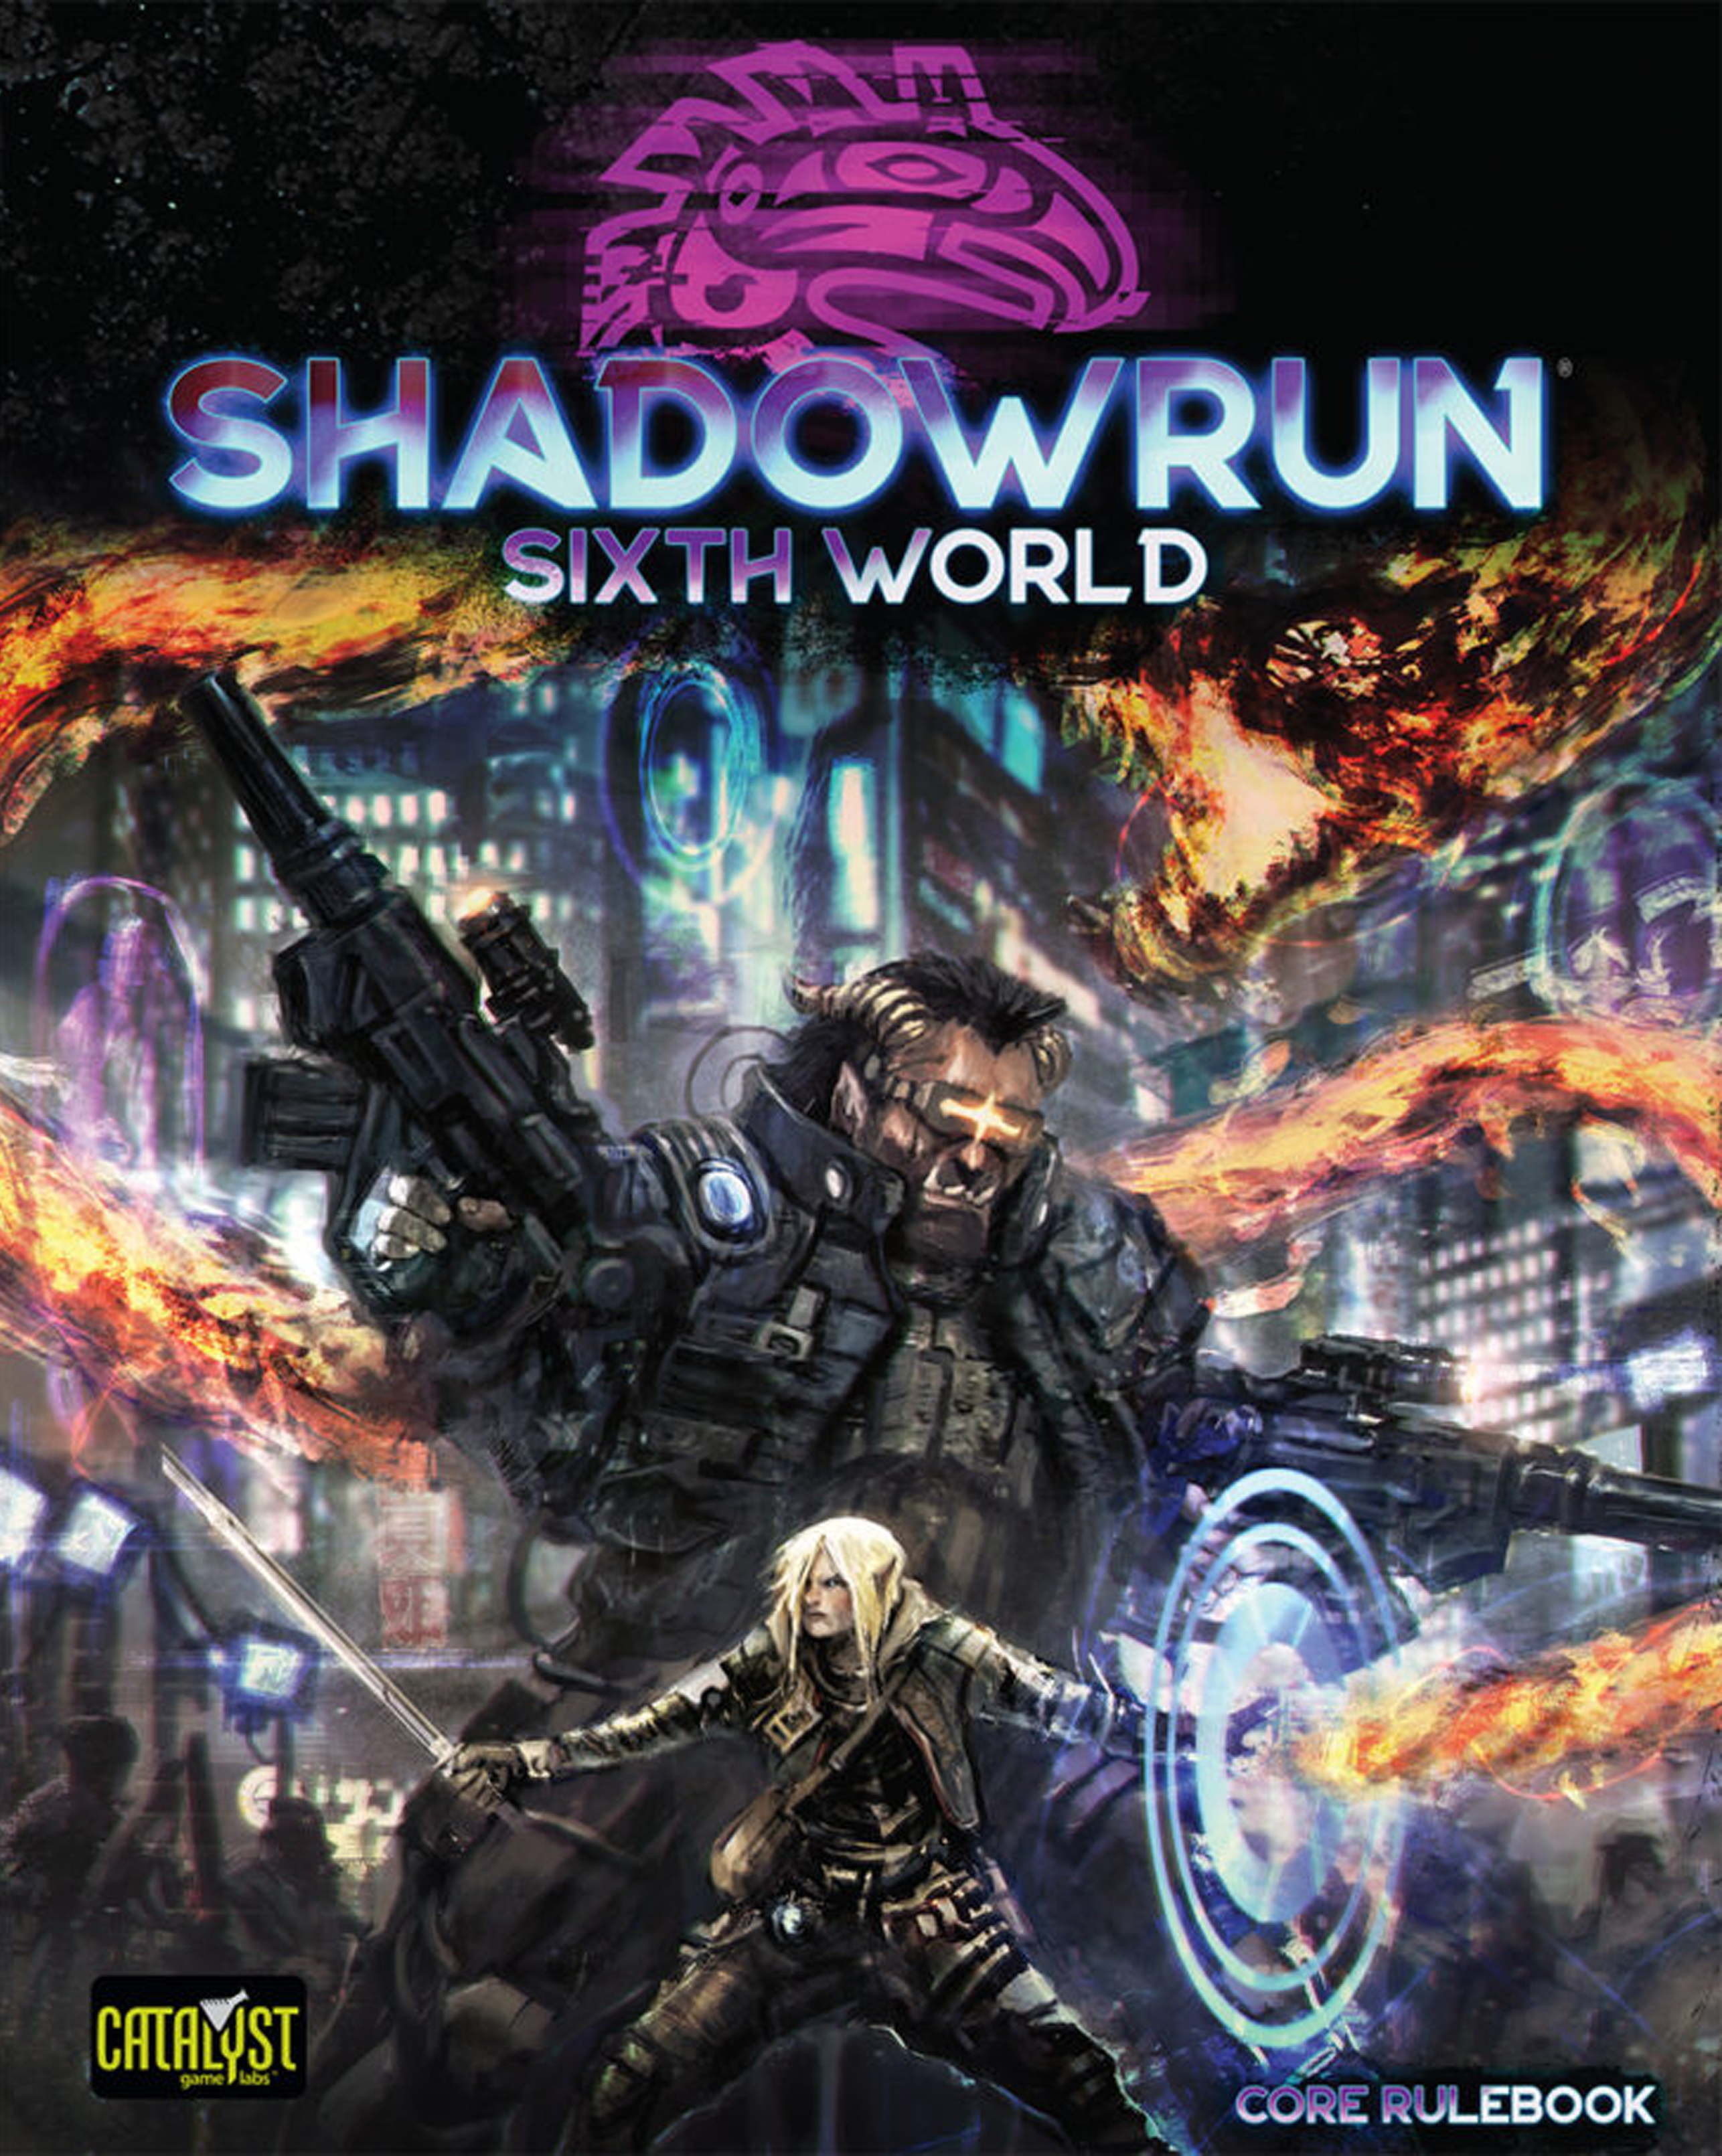 Shadowrun 6th World